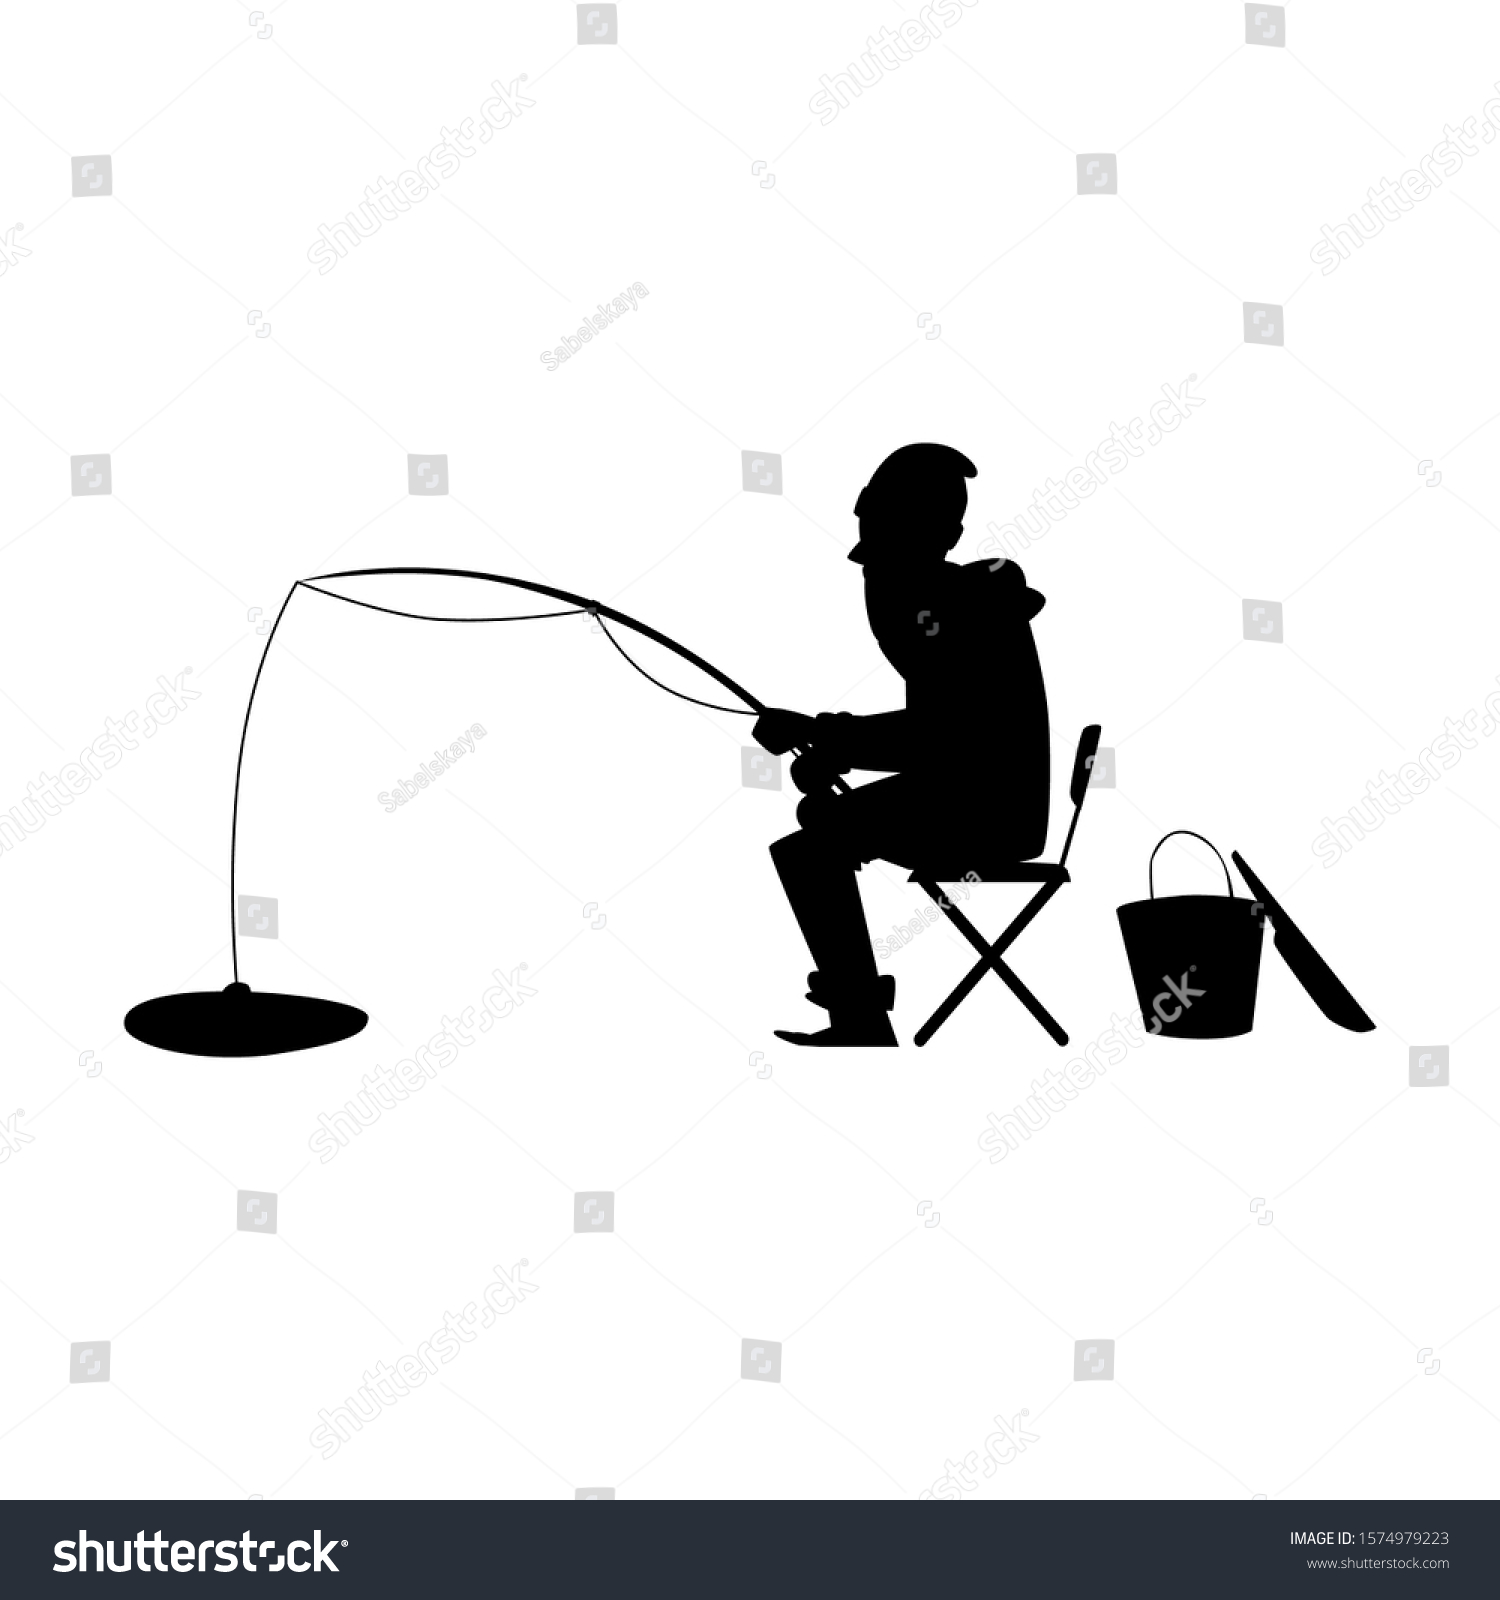 black silhouette man on winter fishing stock vector royalty free 1574979223 https www shutterstock com image vector black silhouette man on winter fishing 1574979223